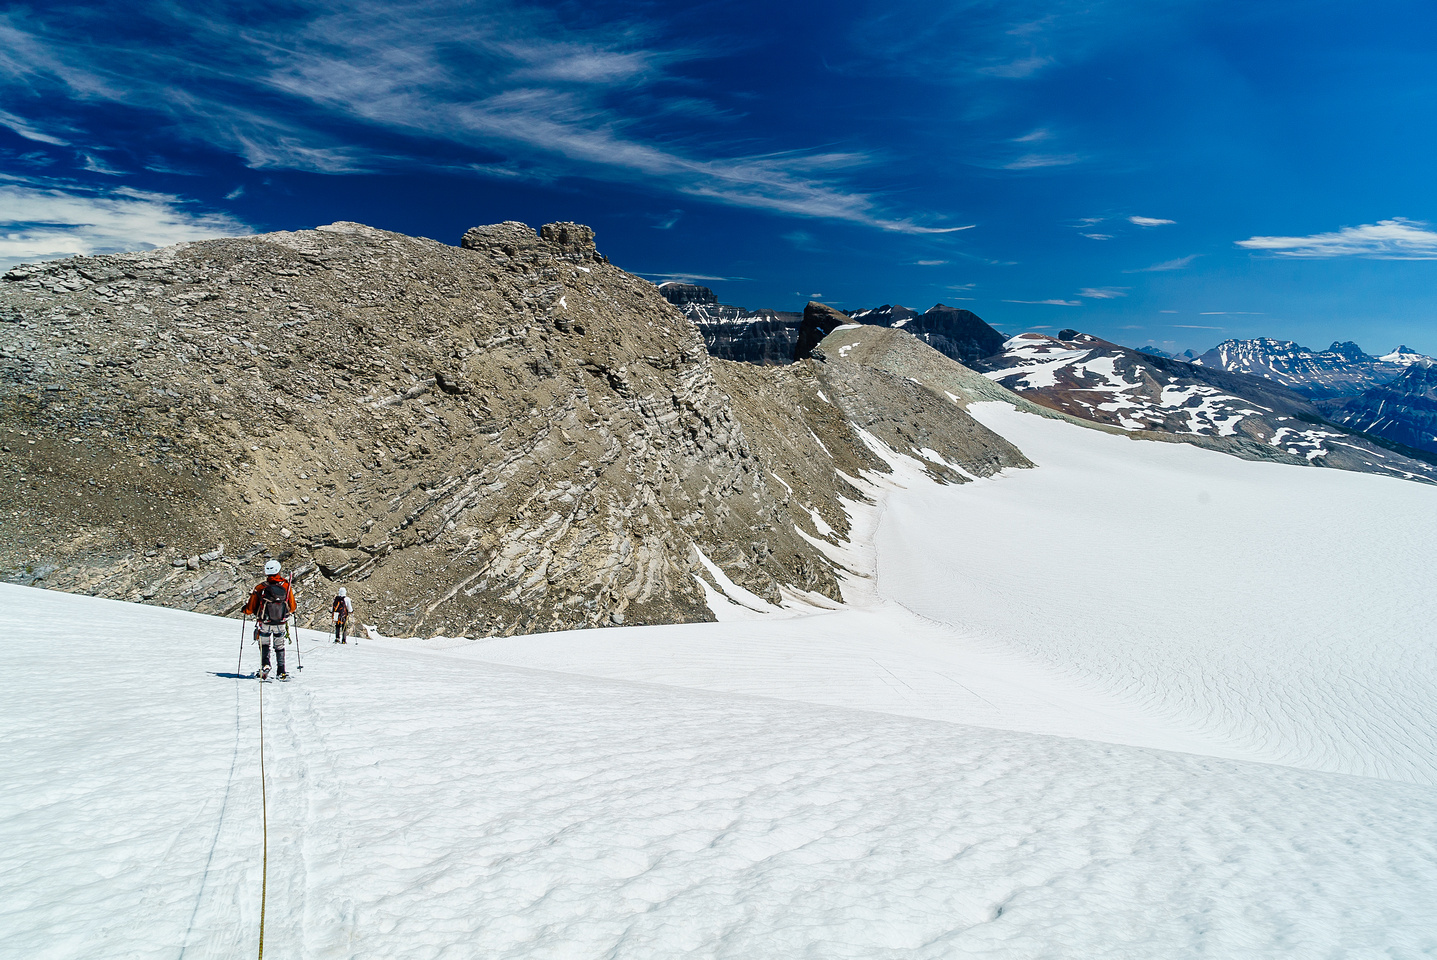 Losing hundreds of meters of height into the baking hot bowl just west of Arctomys ascent ridge.